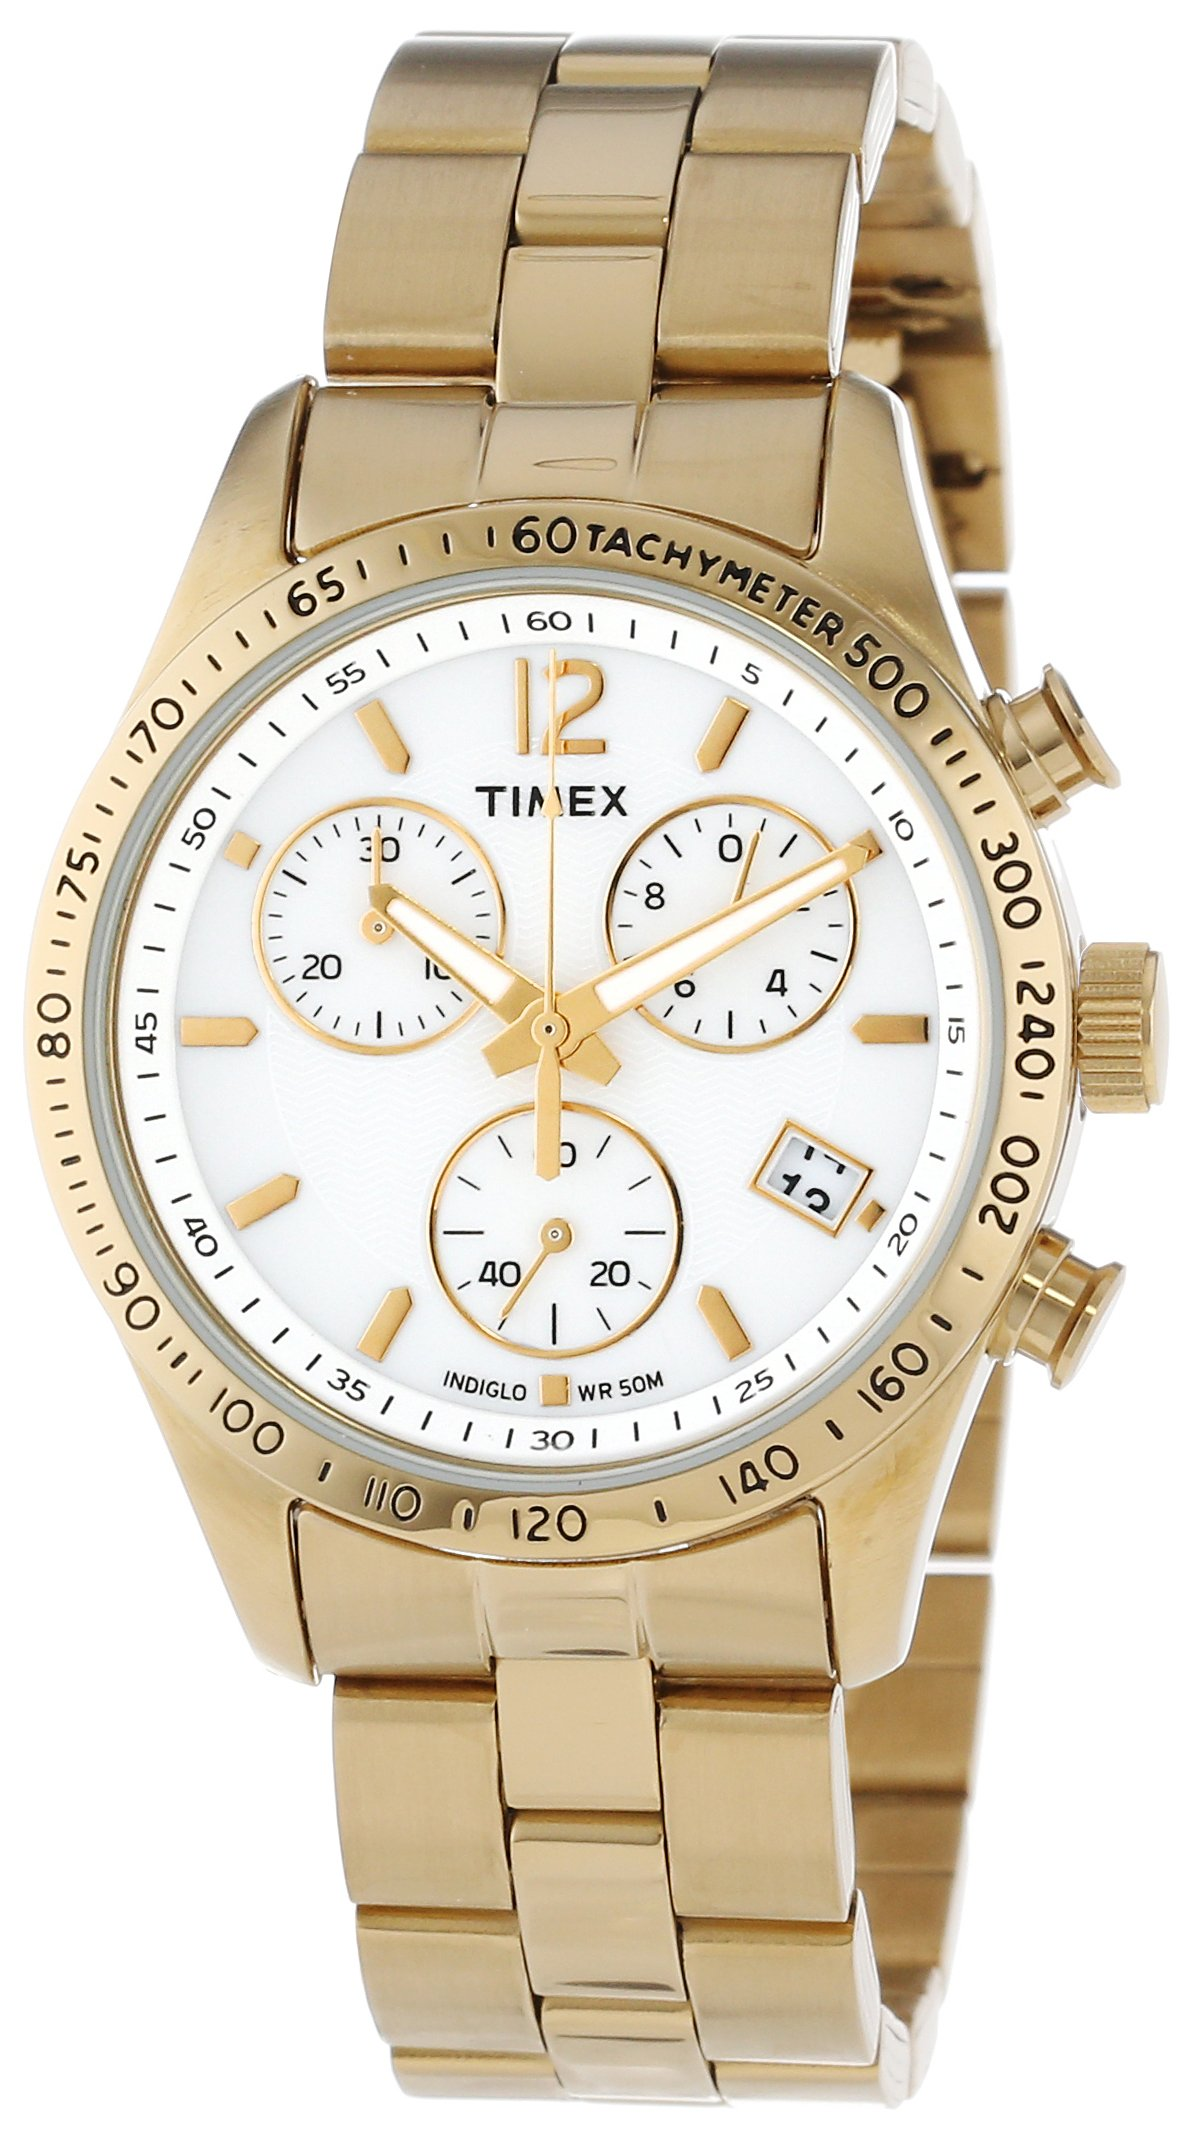 Timex Women's T2P058KW Ameritus Chronograph White Dial, Gold-Tone Stainless Steel Bracelet Watch by Timex